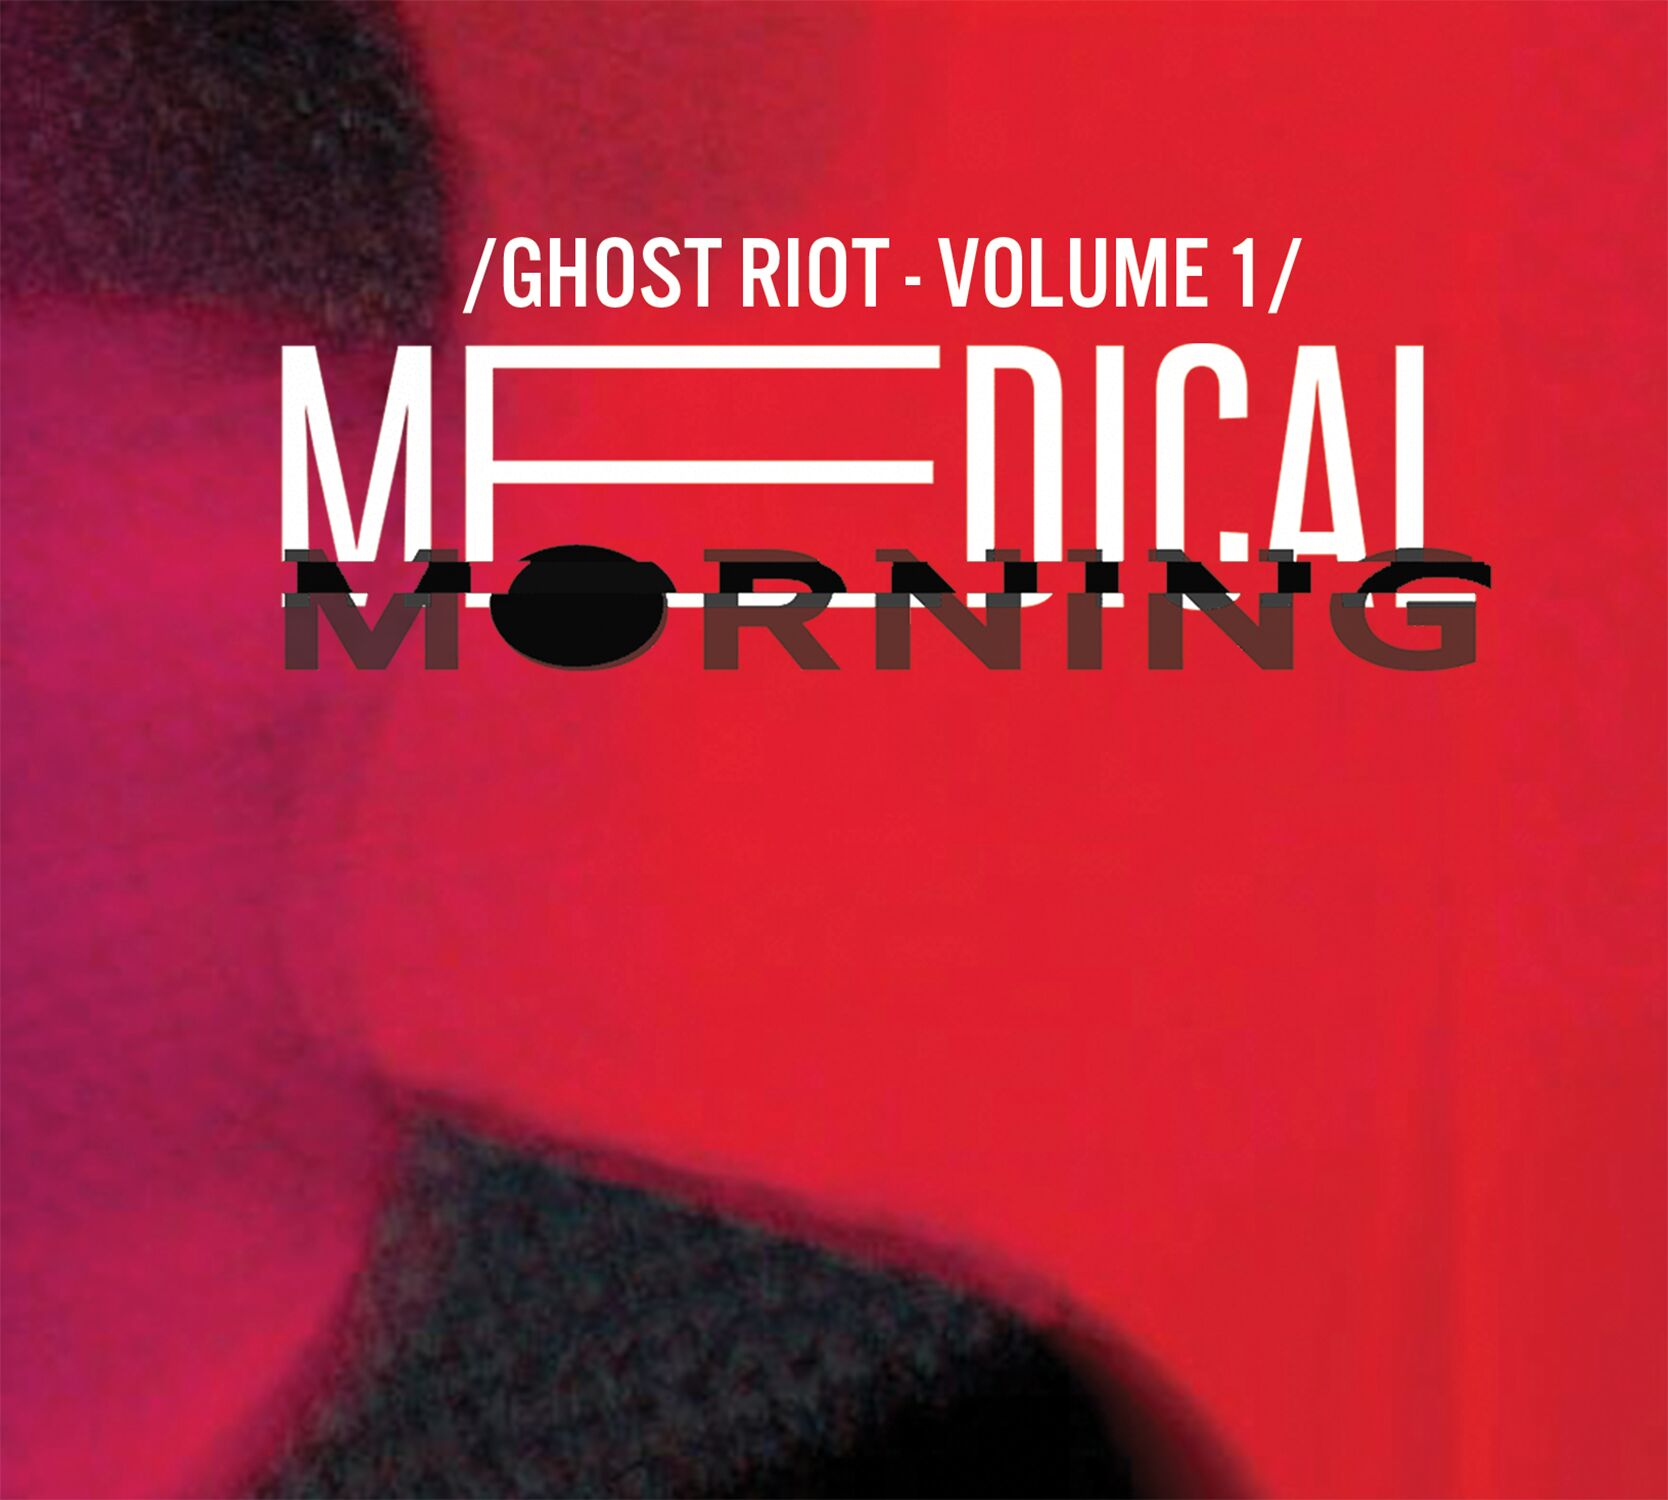 Medical Morning Ghost Riot Volume 1